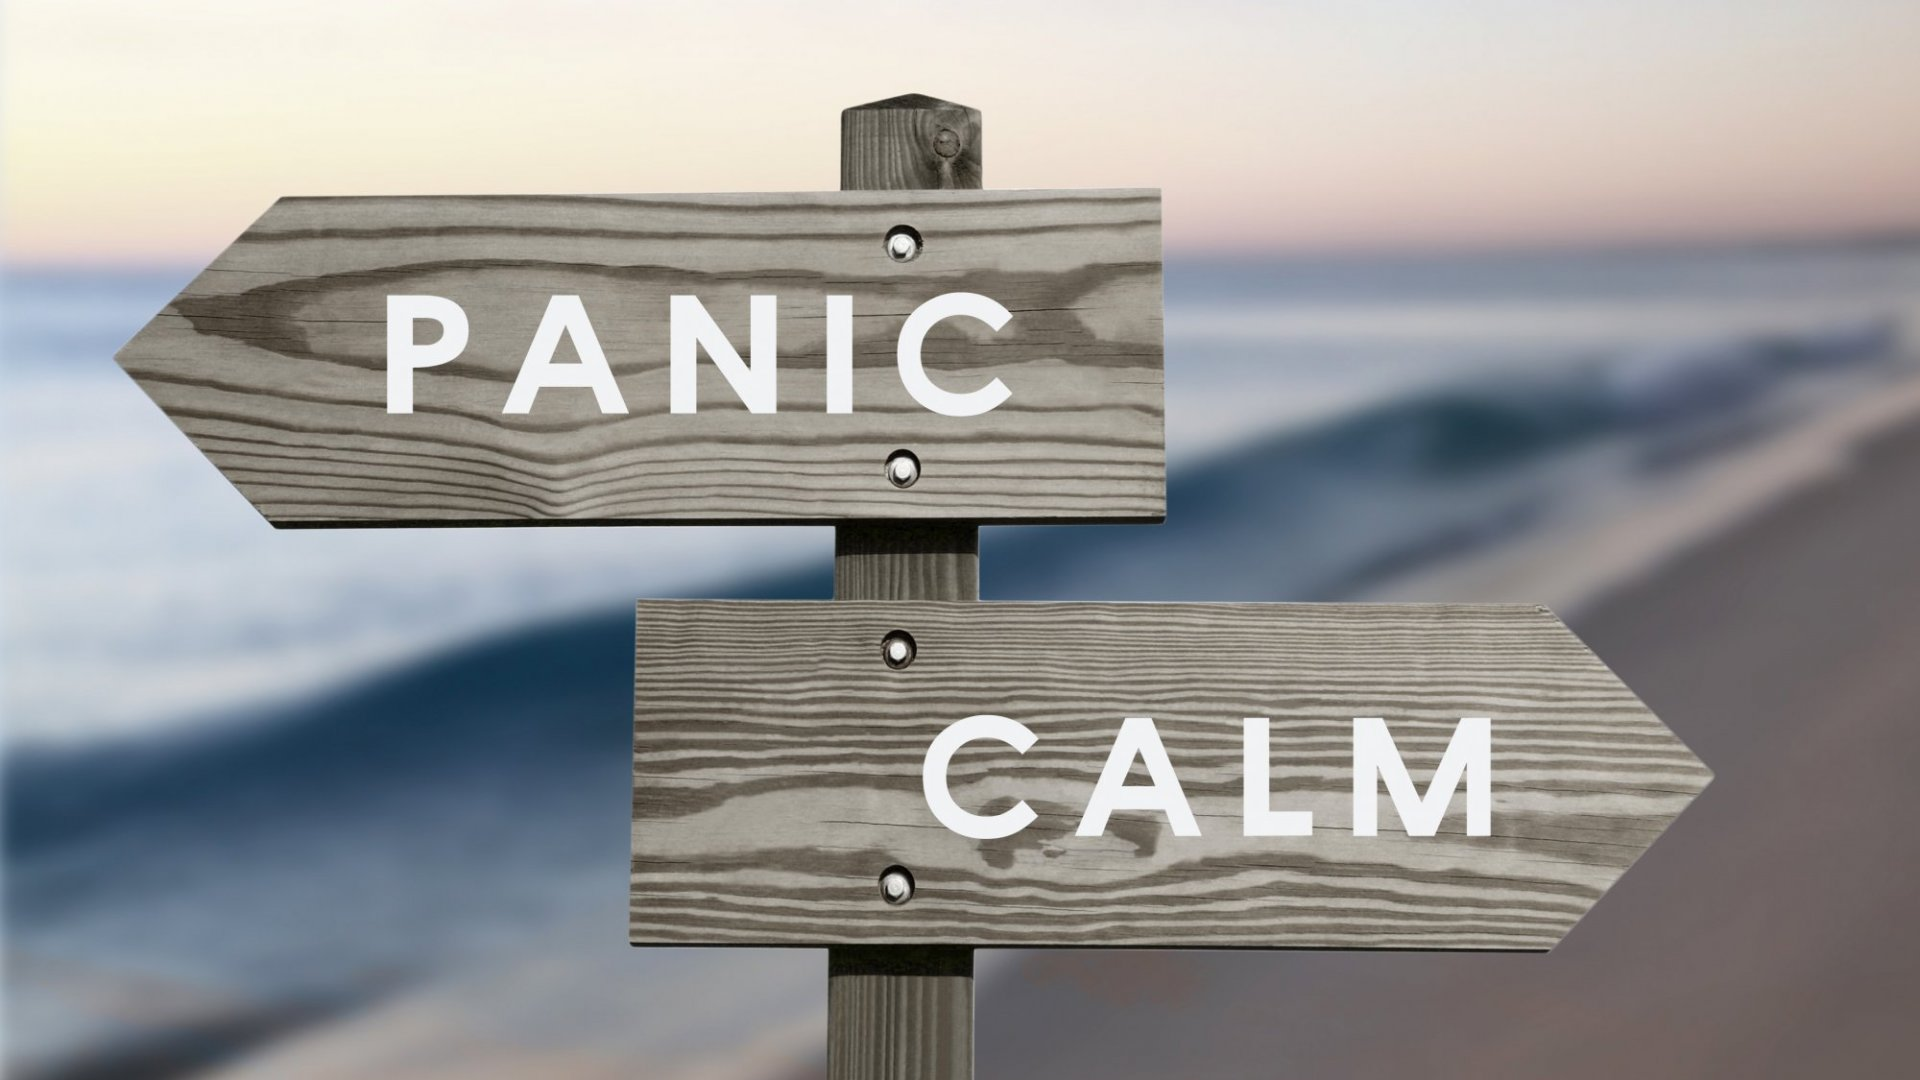 Panic is trying to tell you something: you're not ready. Ignore it.